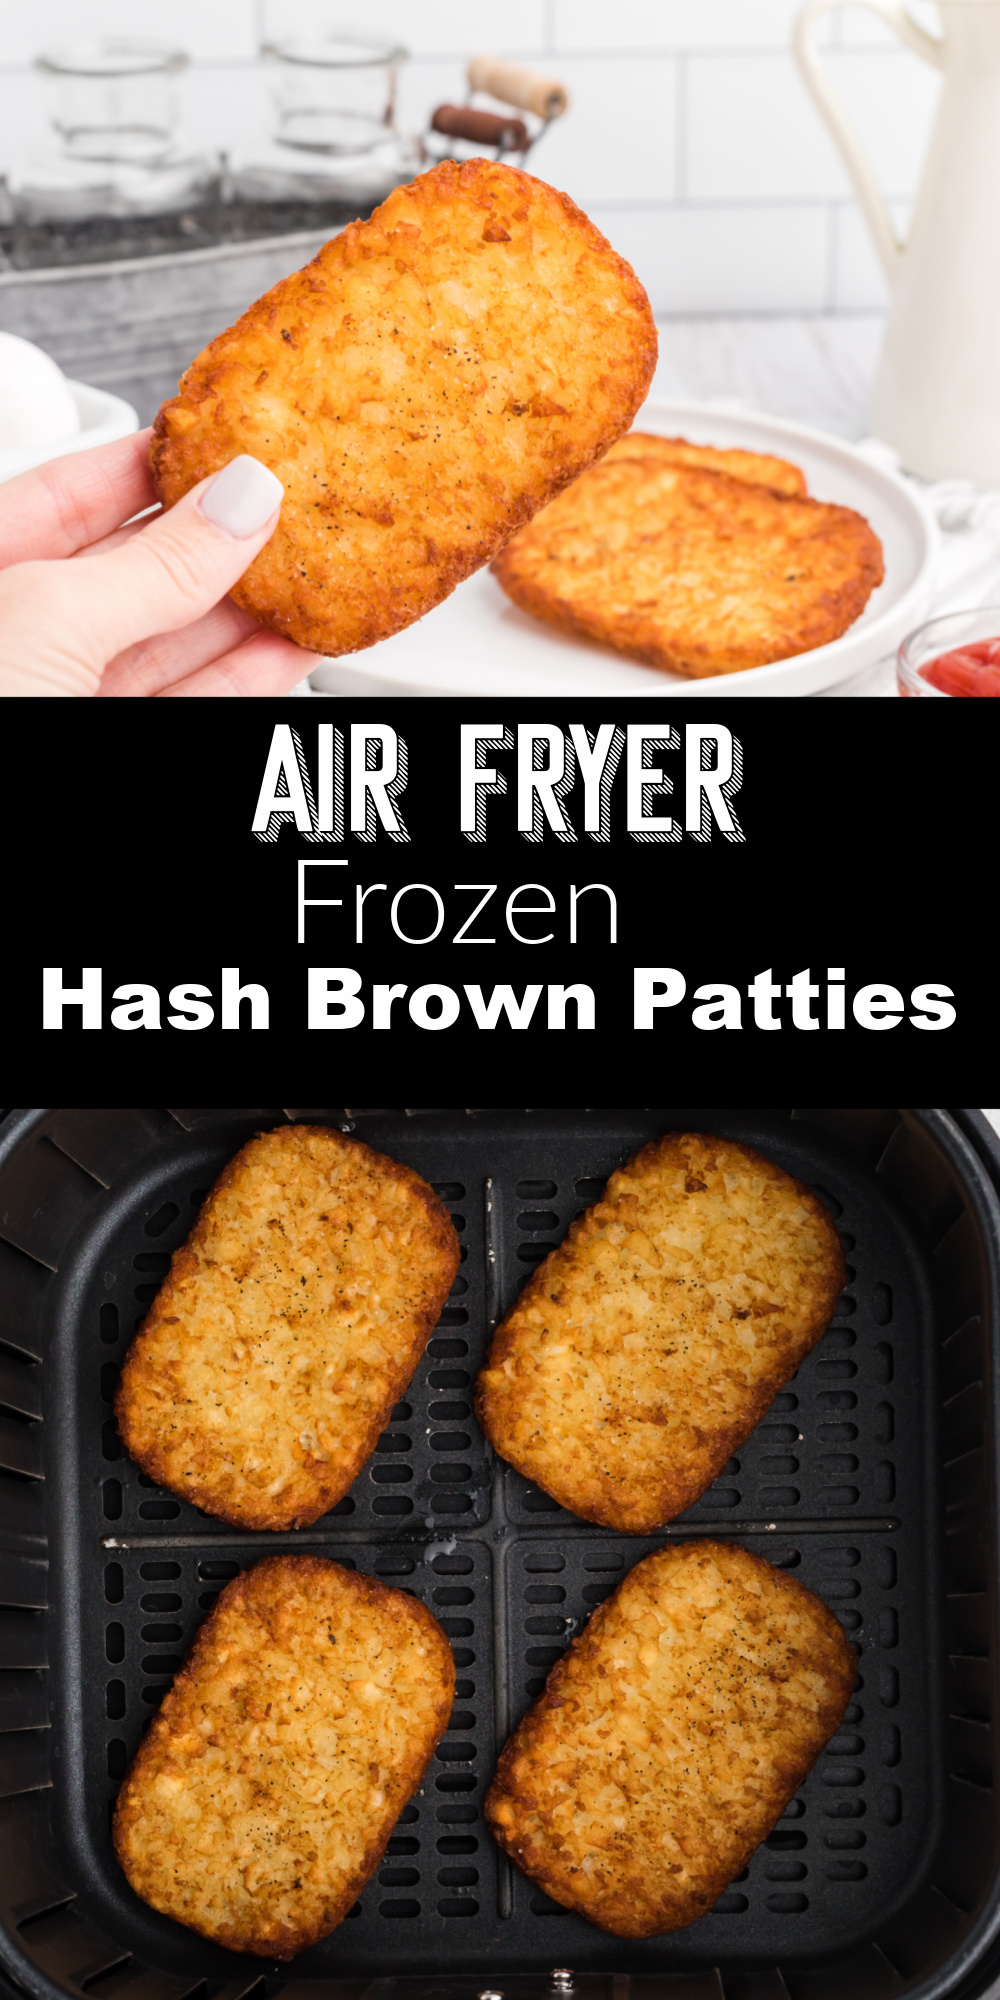 These Air Fryer Hash browns are easy and delicious. Our family loves to make these for breakfast. Check out how easy it is to make these frozen hash brown patties in the air fryer in less than 15 minutes! It's the perfect easy side.